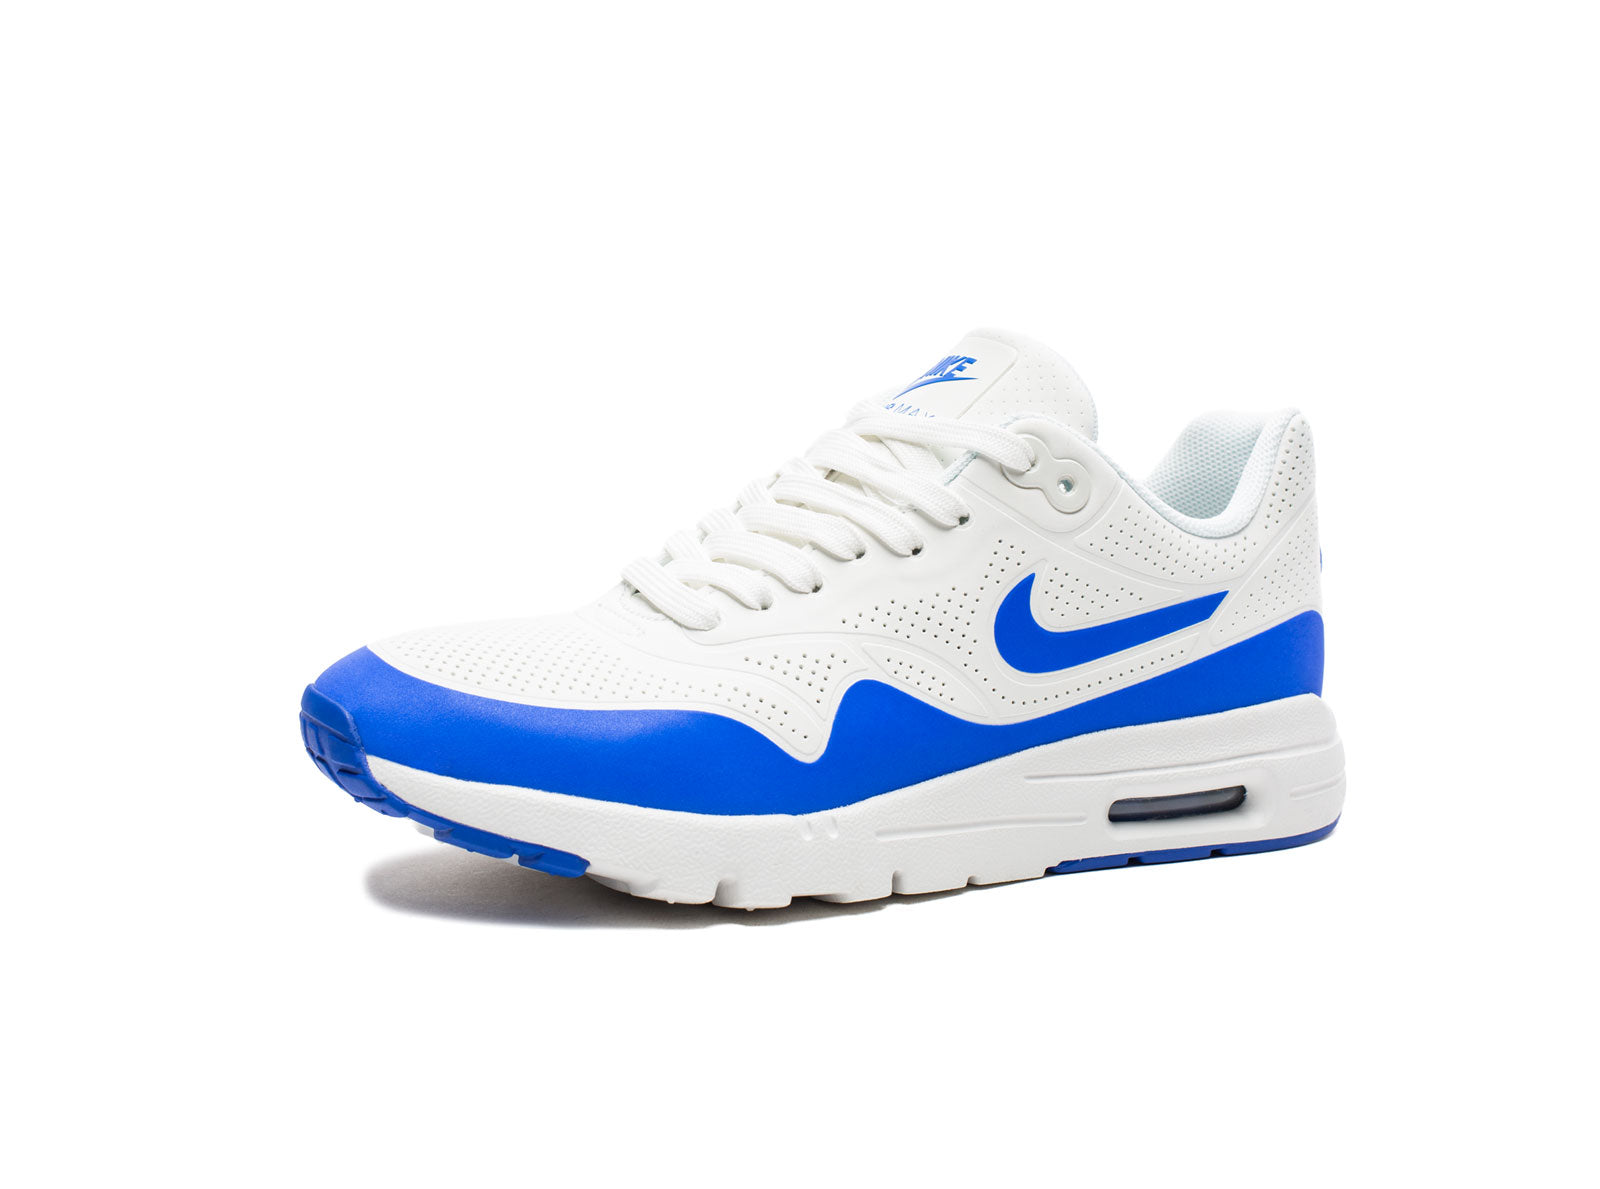 WOMEN'S AIR MAX 1 ULTRA MOIRE - SUMMIT WHITE/ WHITE/ RACER BLUE